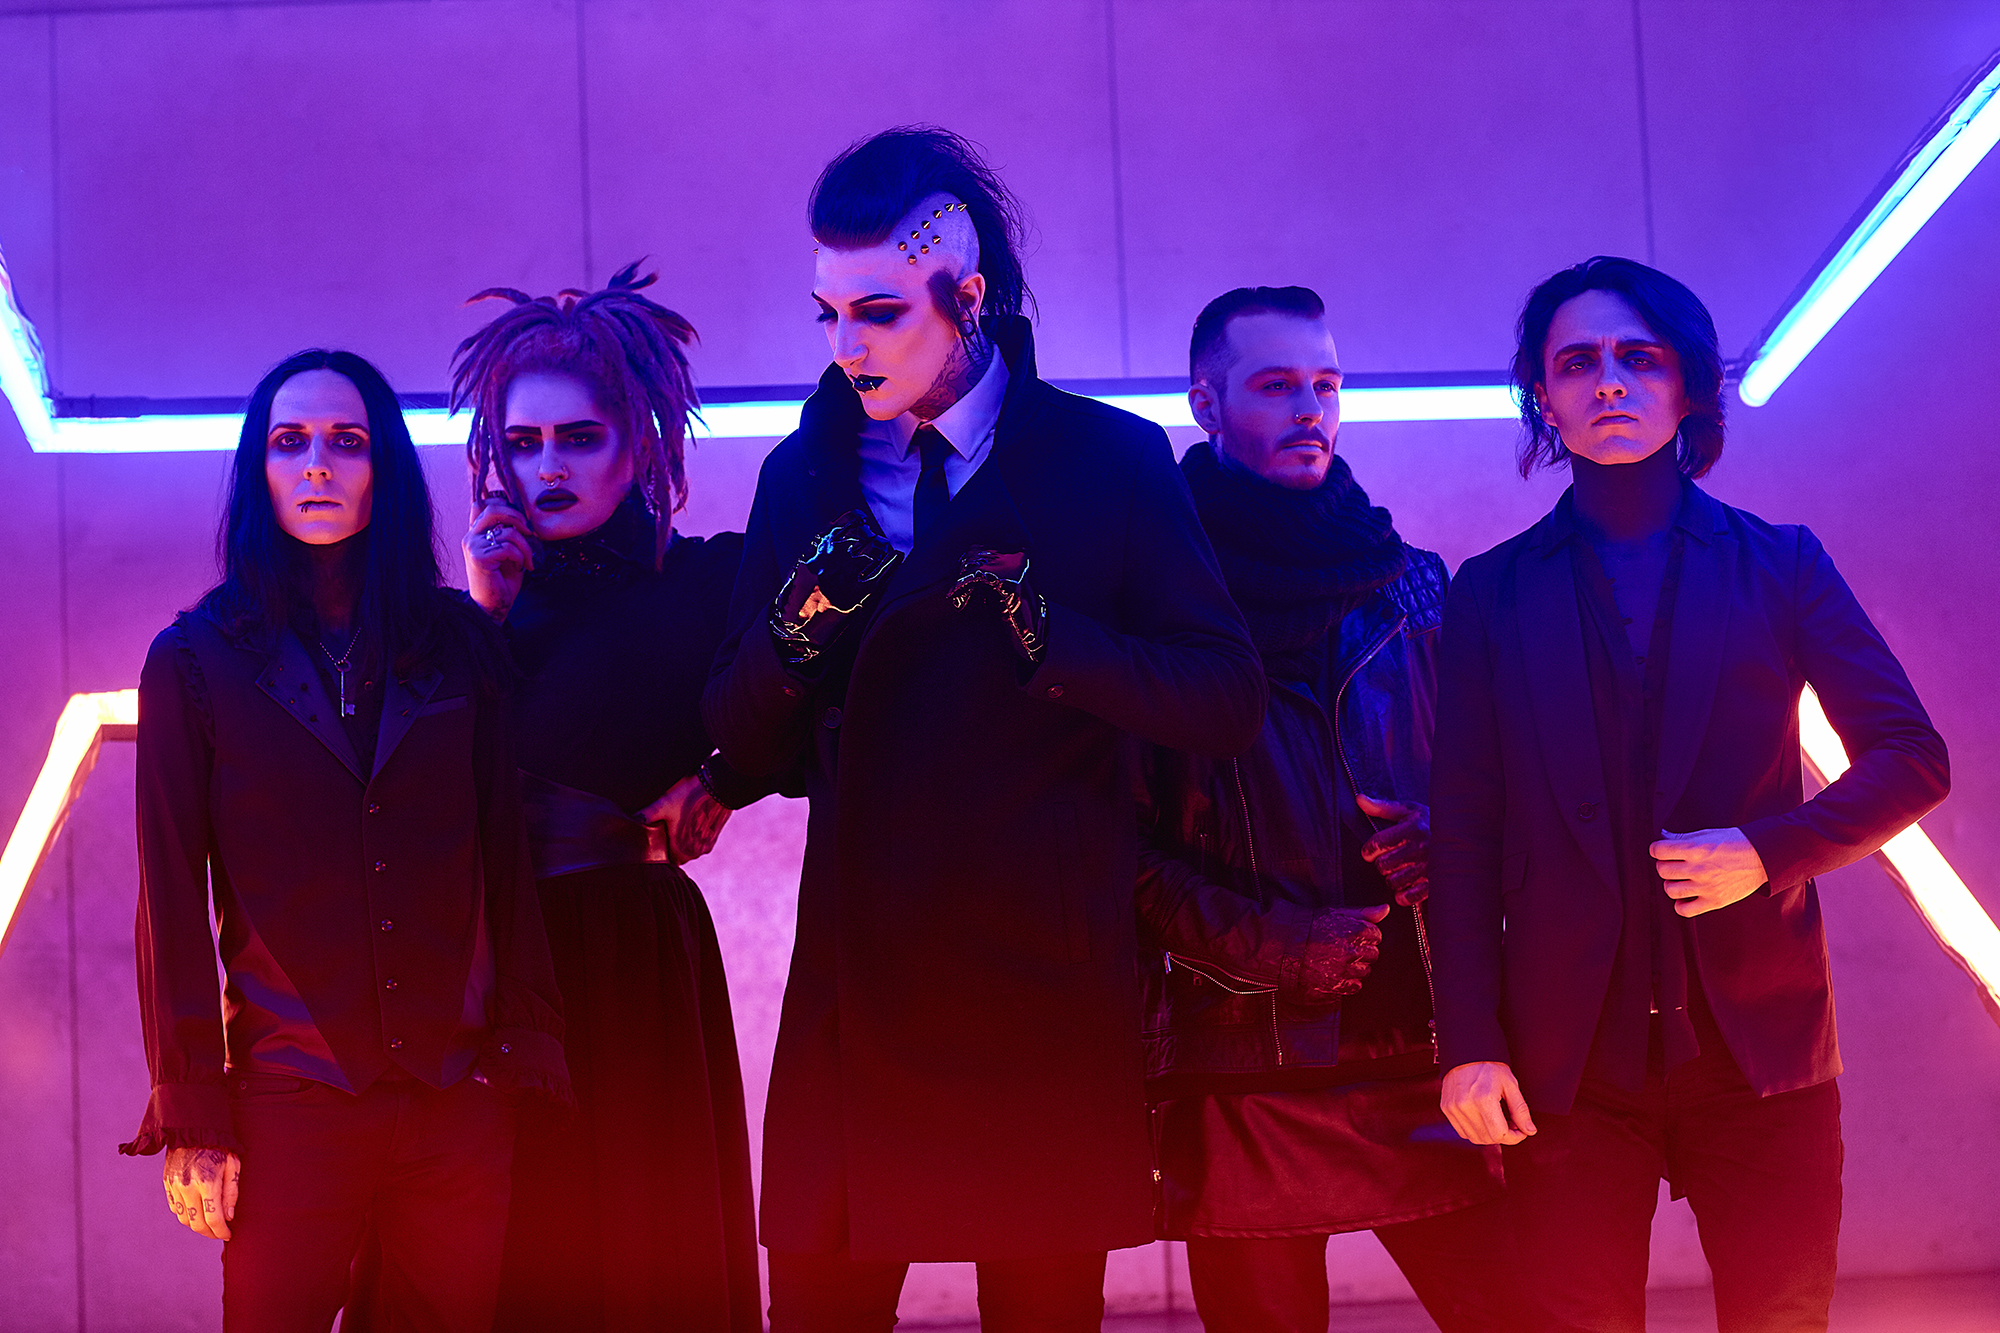 Motionless In White unveil new song & album details